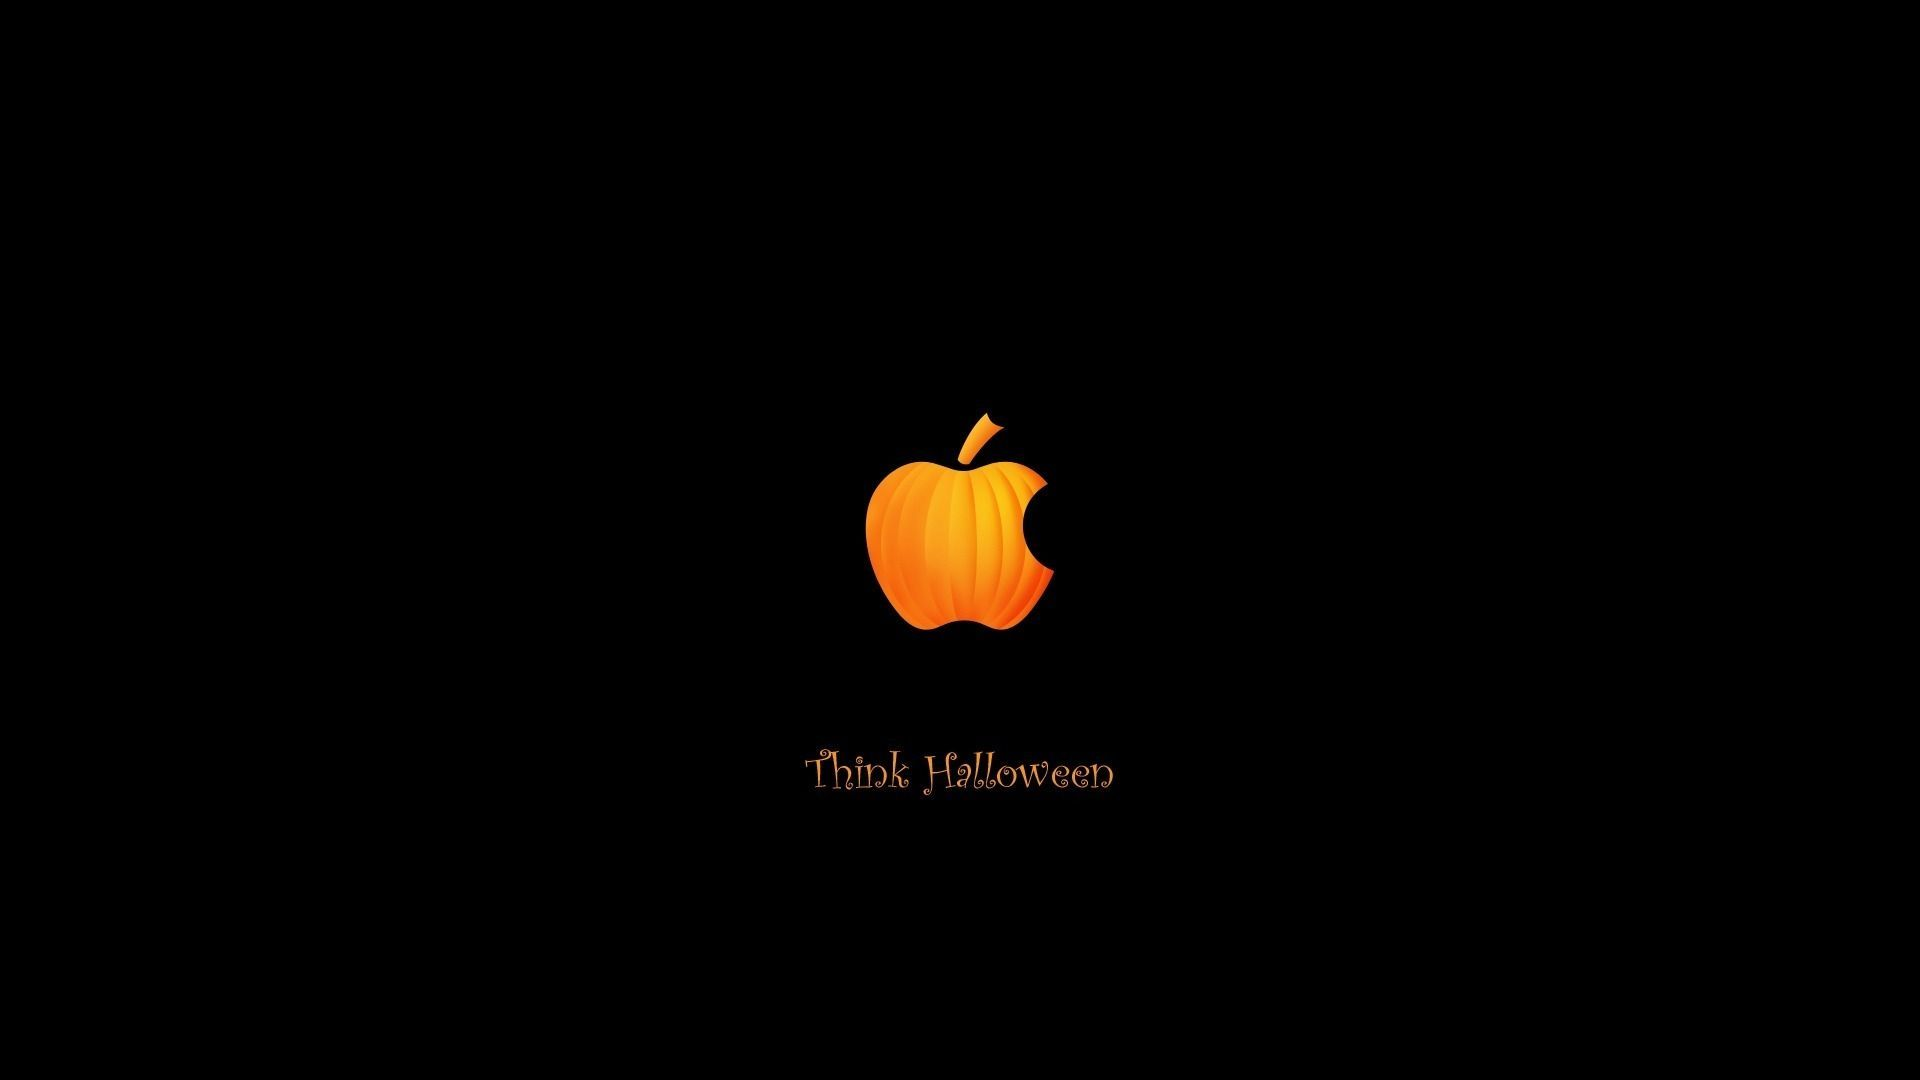 Image Result For Macbook Desktop Backgrounds Halloween Hallowe in 1920x1080